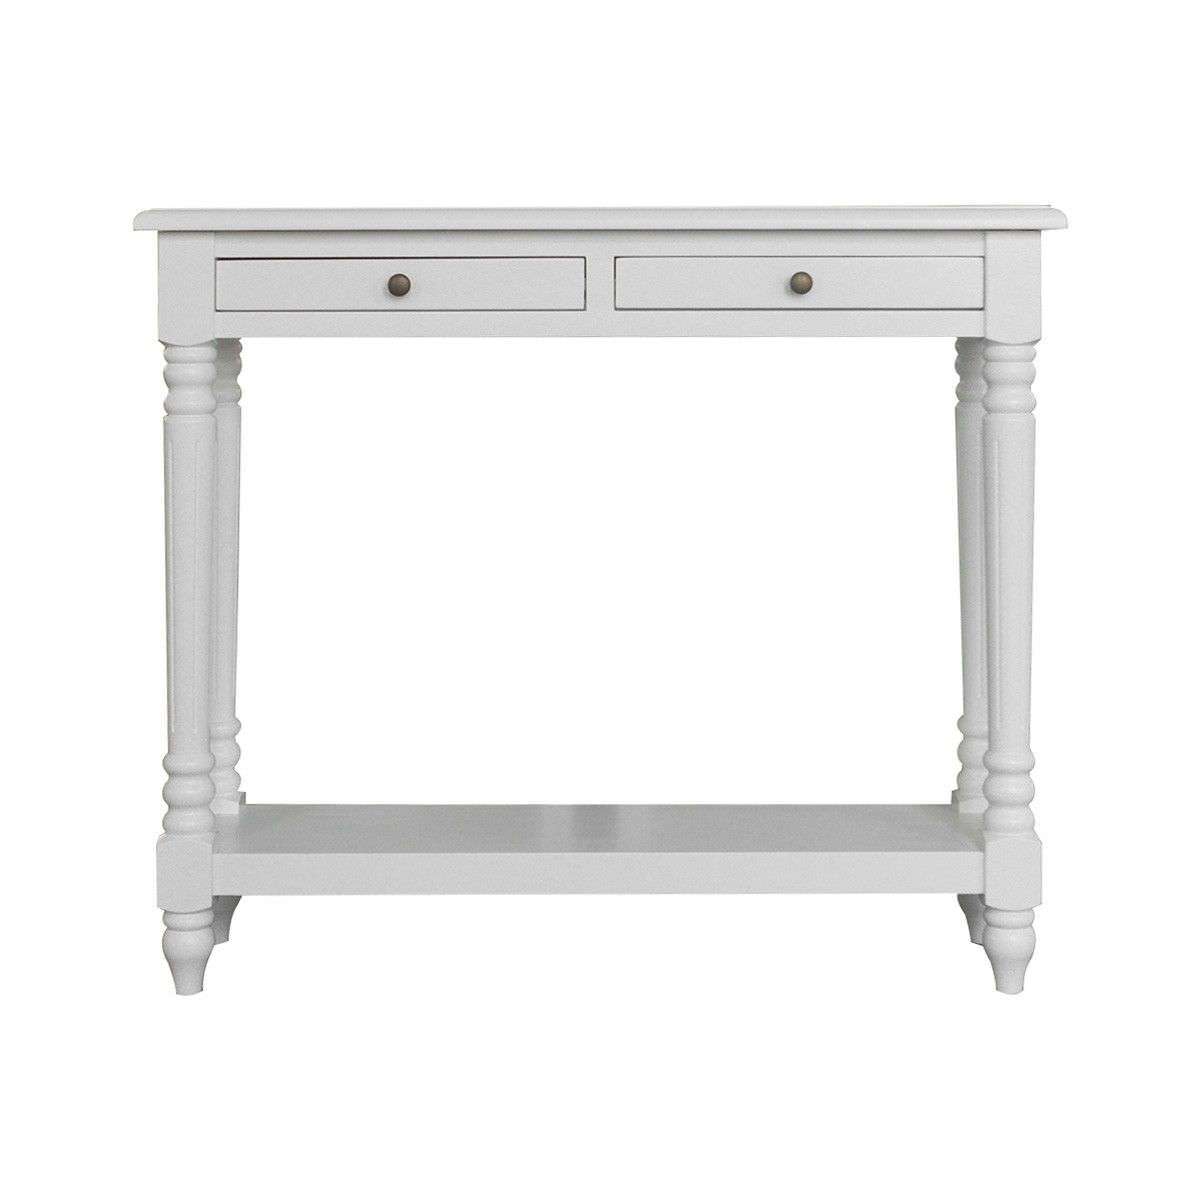 Curtin Oak Timber Console Table, 100cm, Matt White